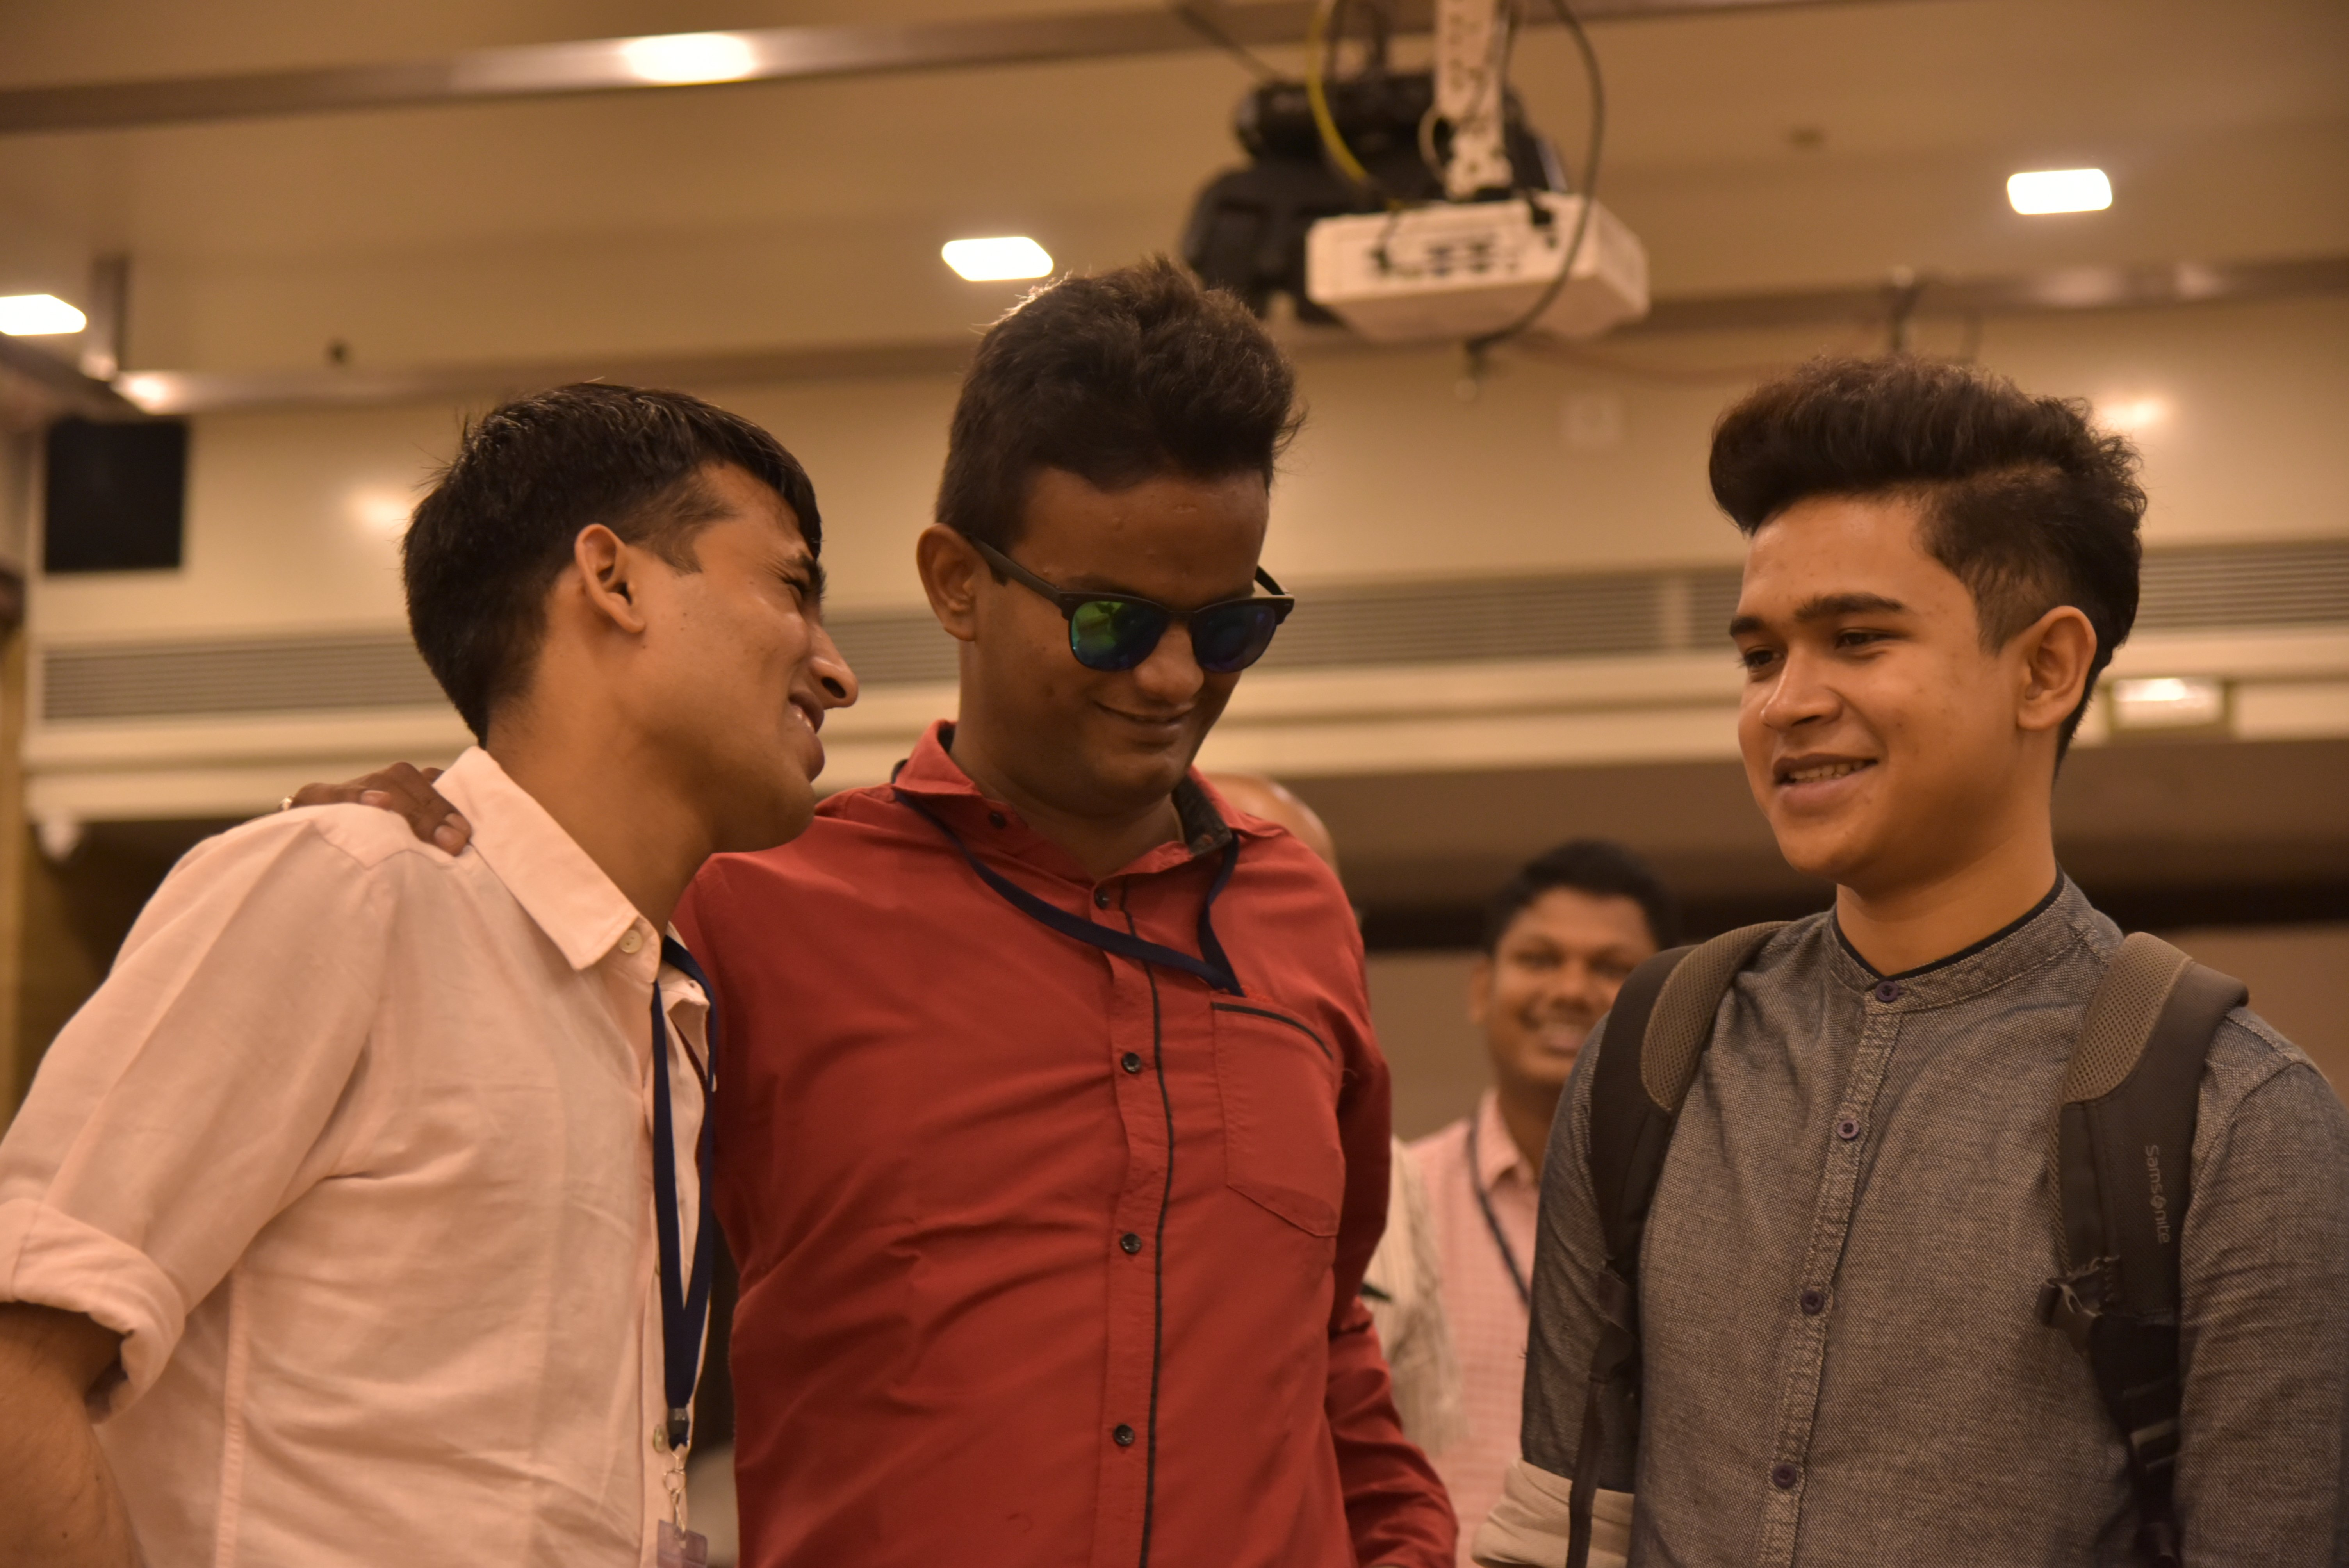 Three young men are standing and smiling. One of them is wearing black spectacles. One more person is visible in the background.